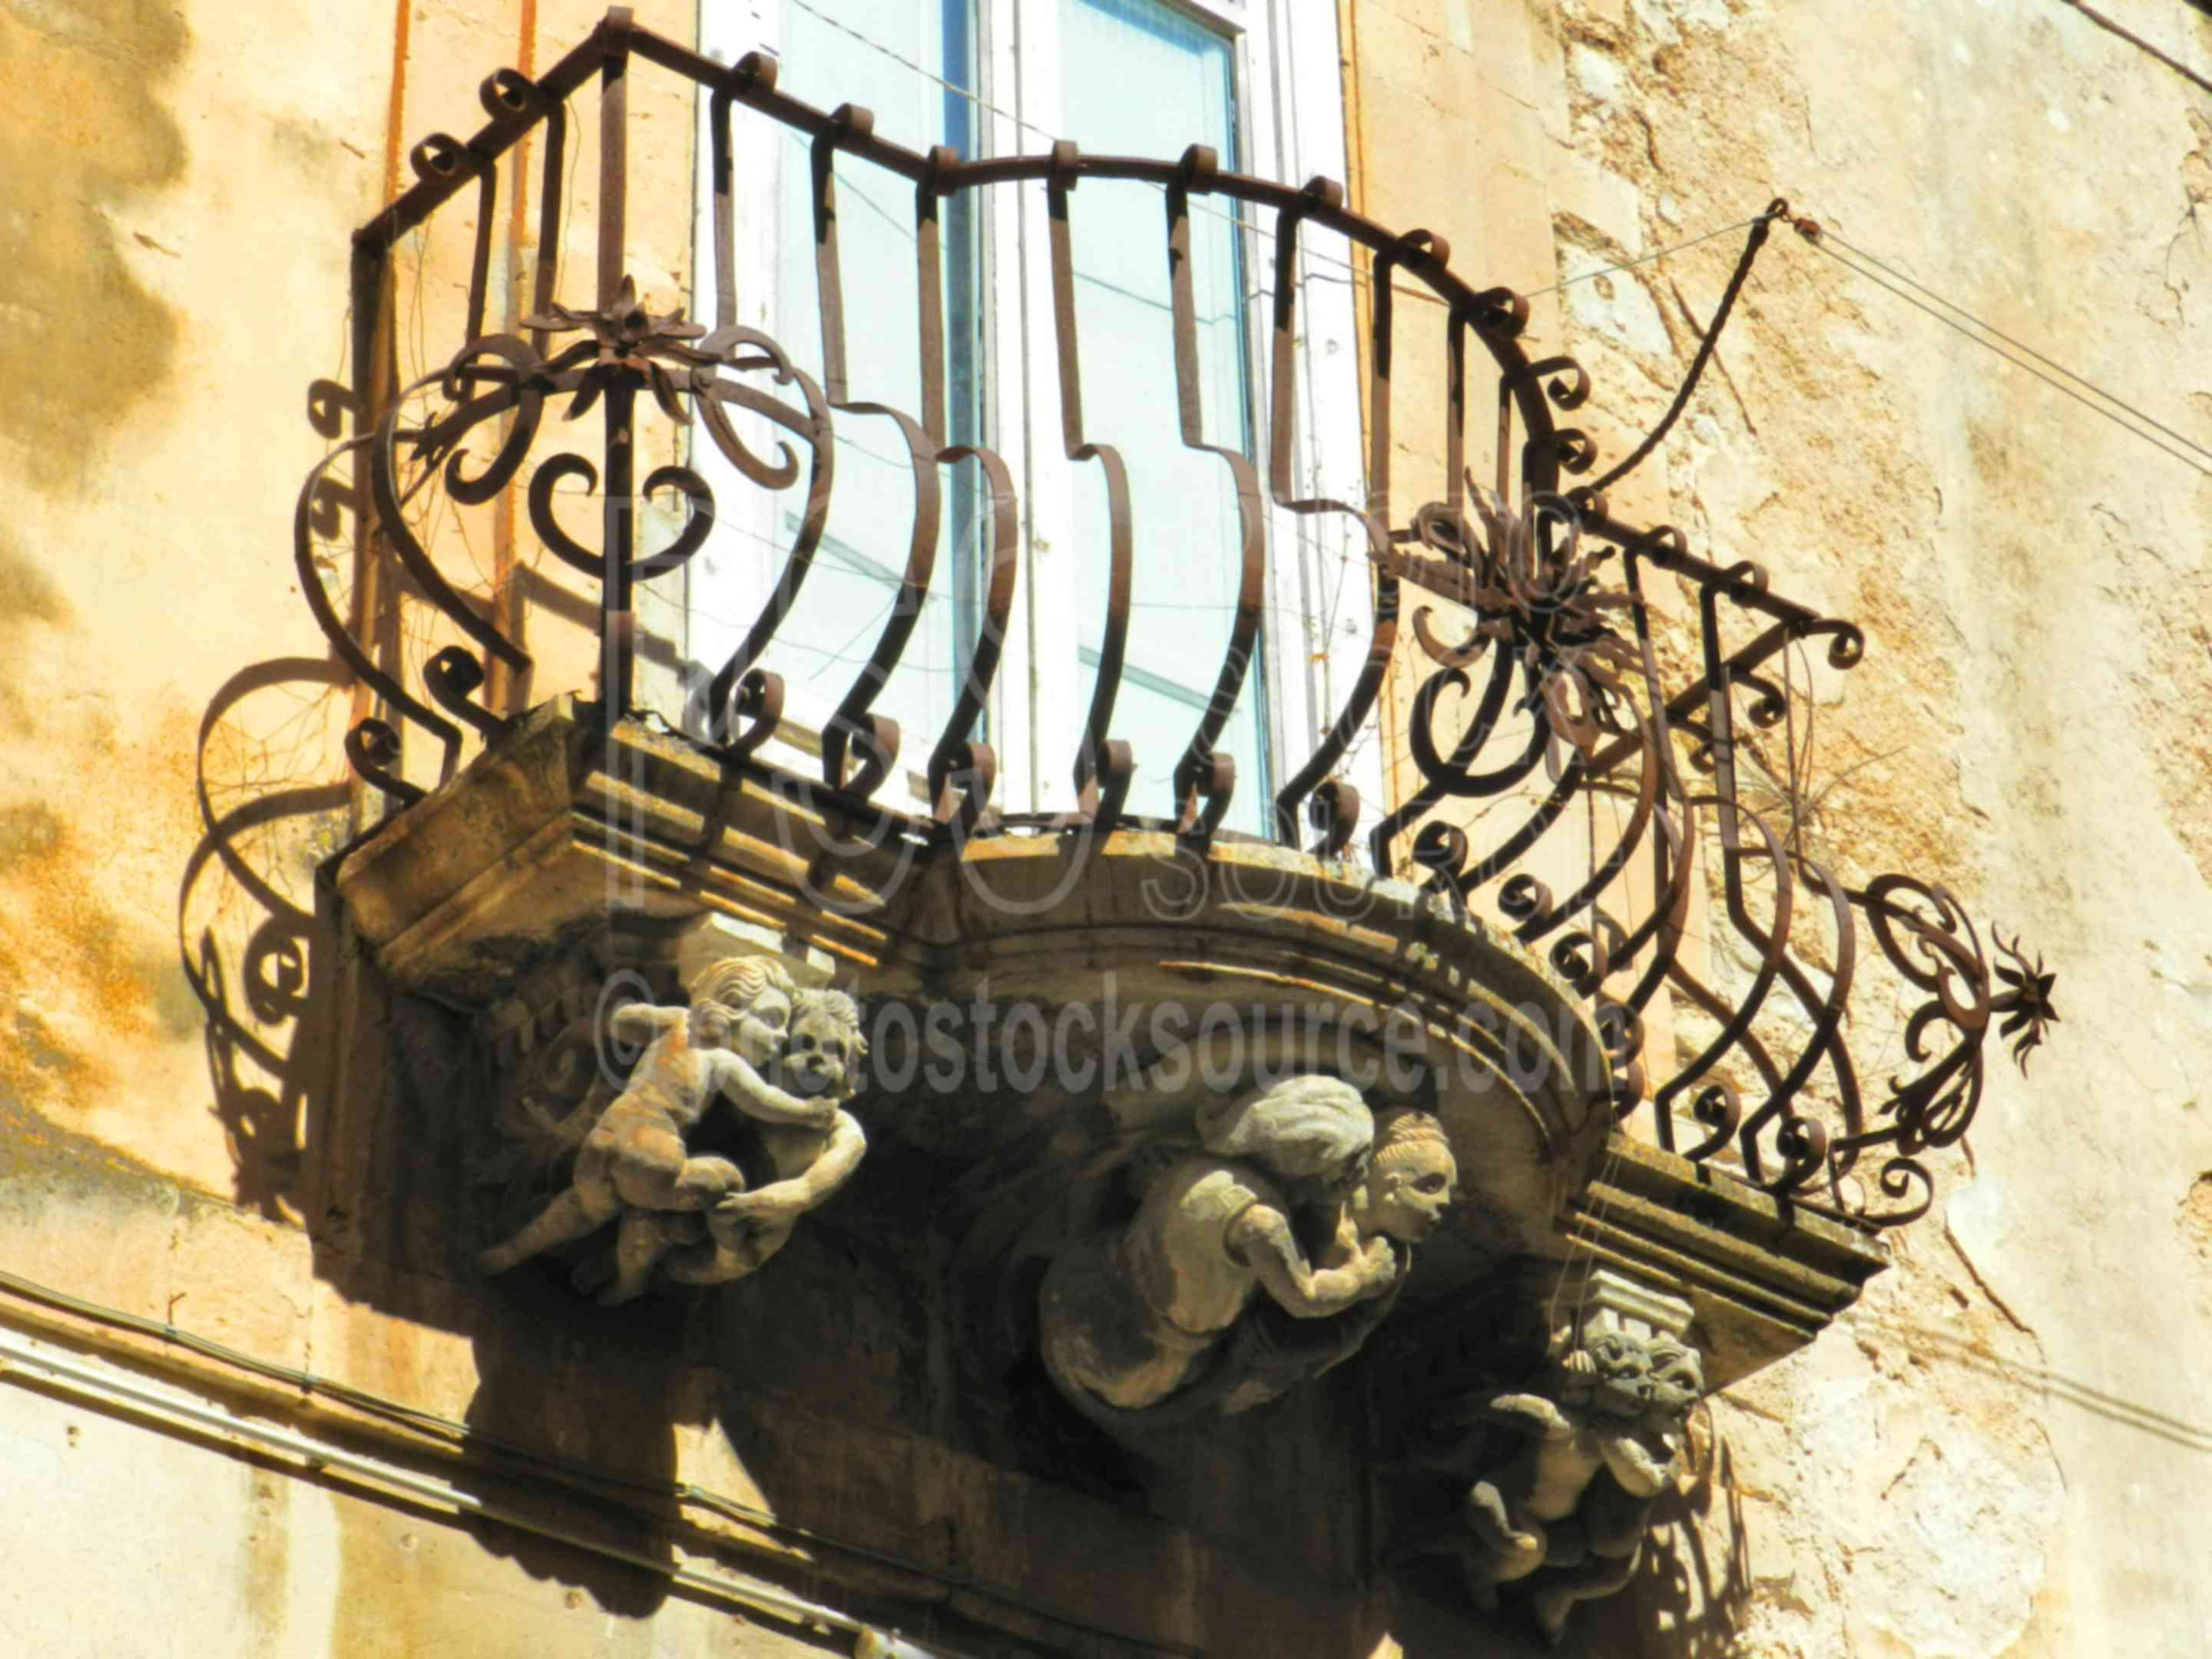 Baroque Balcony Terracotta,ragusa,ragusa ibla,baroque,balcony,wrought iron